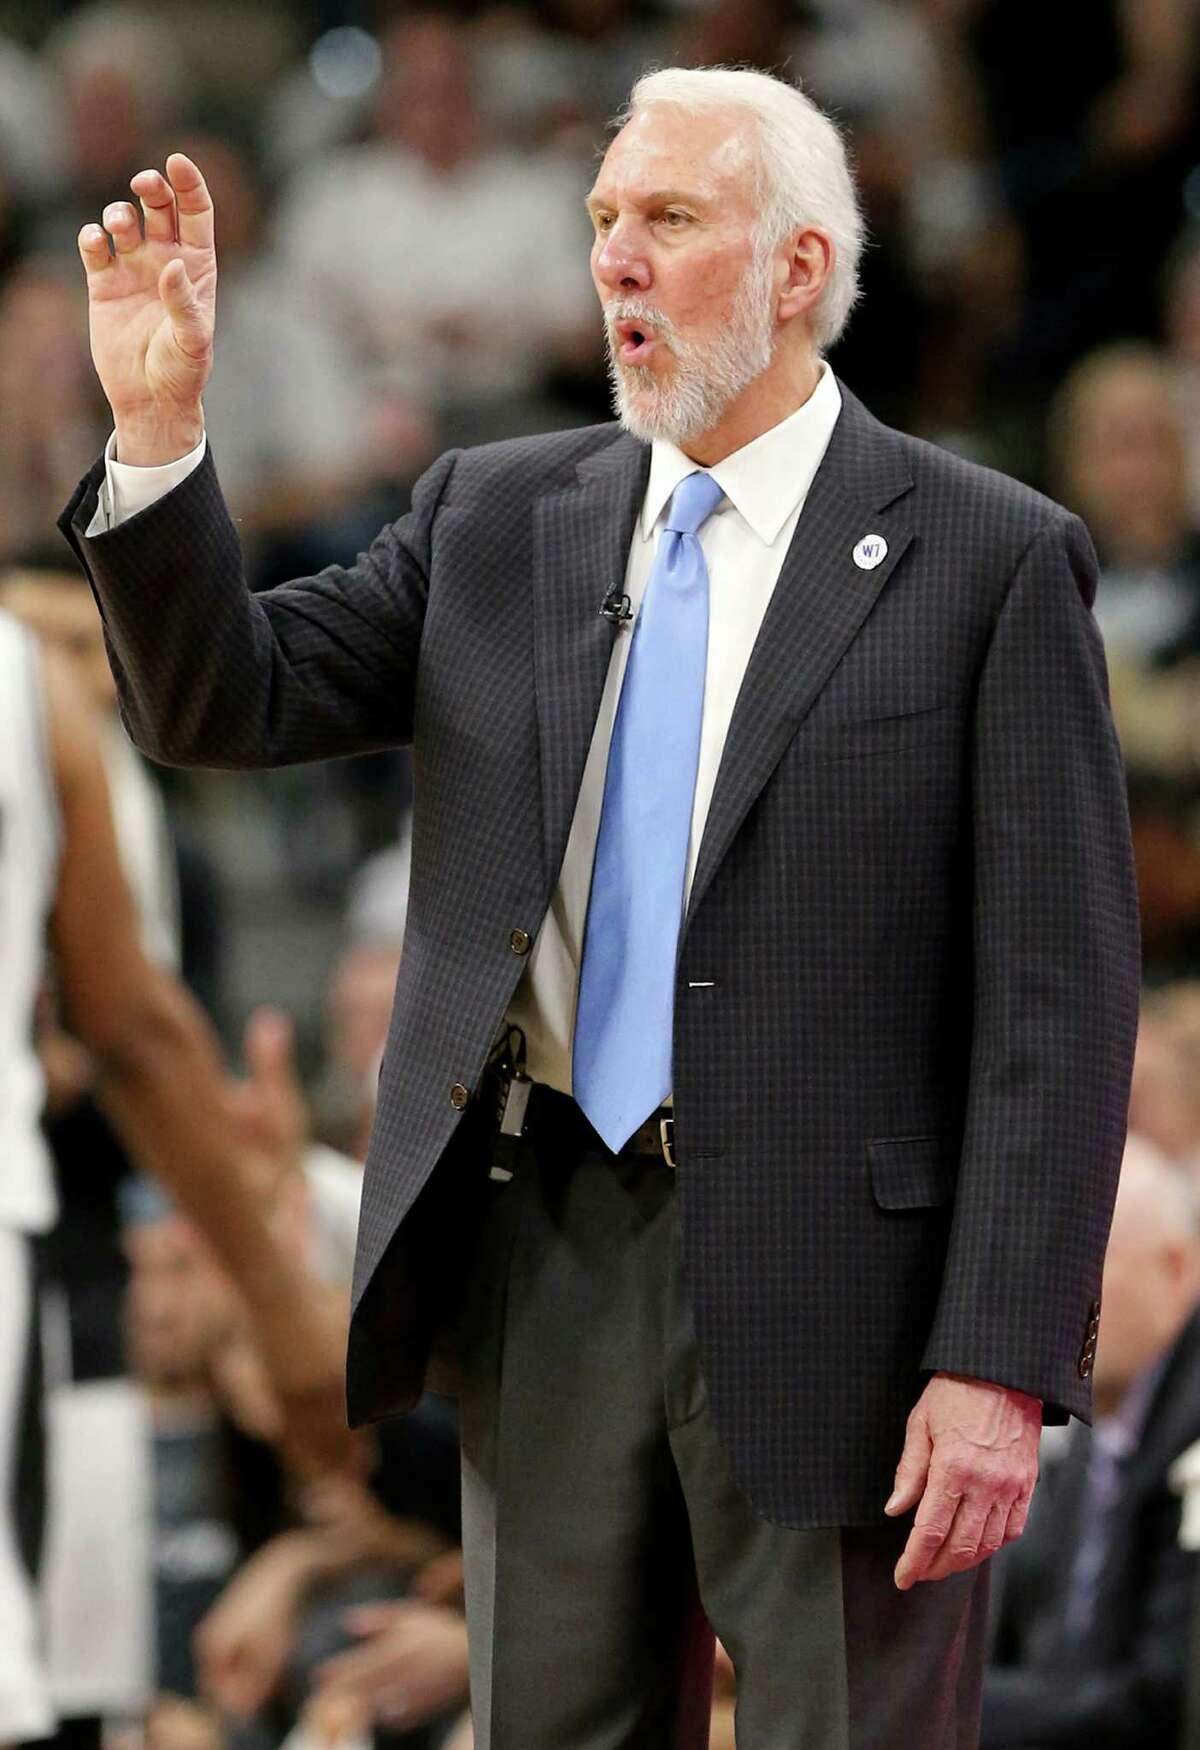 San Antonio Spurs head coach Gregg Popovich calls a play during second half action of Game 5 in the Western Conference semifinals against the Oklahoma City Thunder Tuesday May 10, 2016 at the AT&T Center. The Thunder won 95-91.